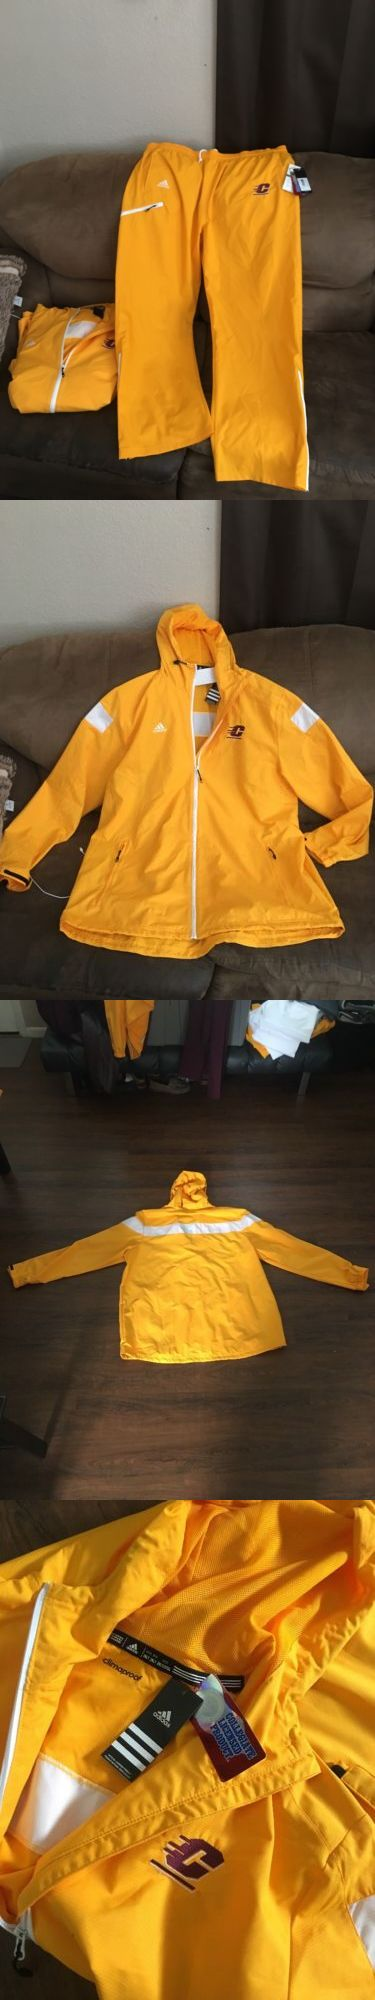 Outerwear 155195: Adult Adidas Track Suit Set 2Xl (Cmu) Central Michigan University-Adidas ! -> BUY IT NOW ONLY: $49.99 on eBay!